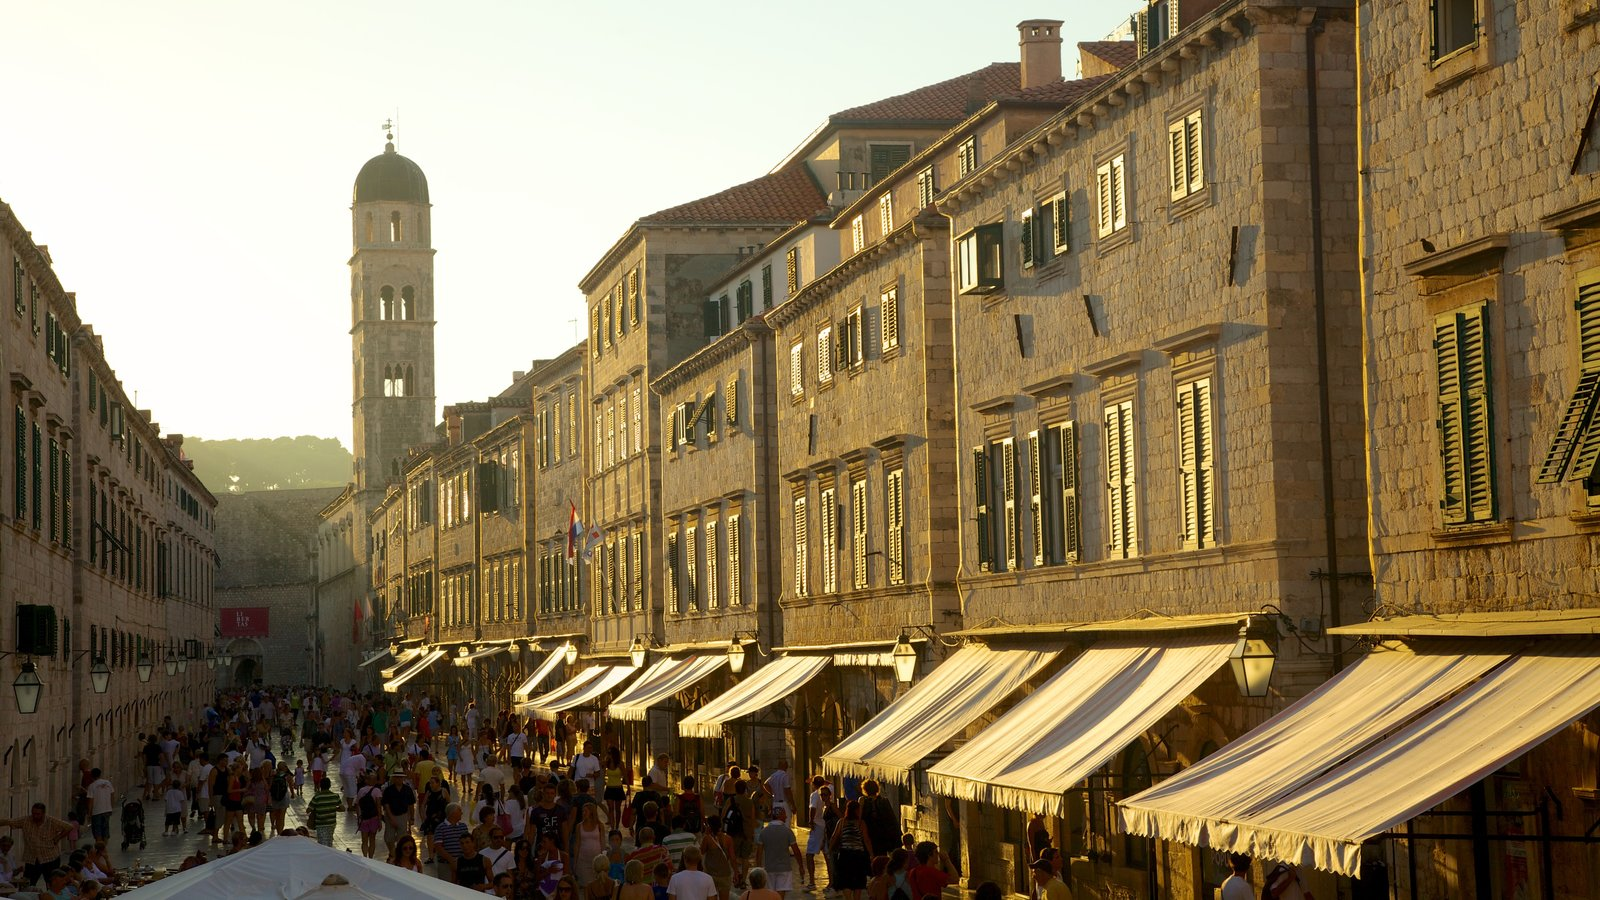 Dubrovnik - Southern Dalmatia which includes a city, street scenes and heritage architecture